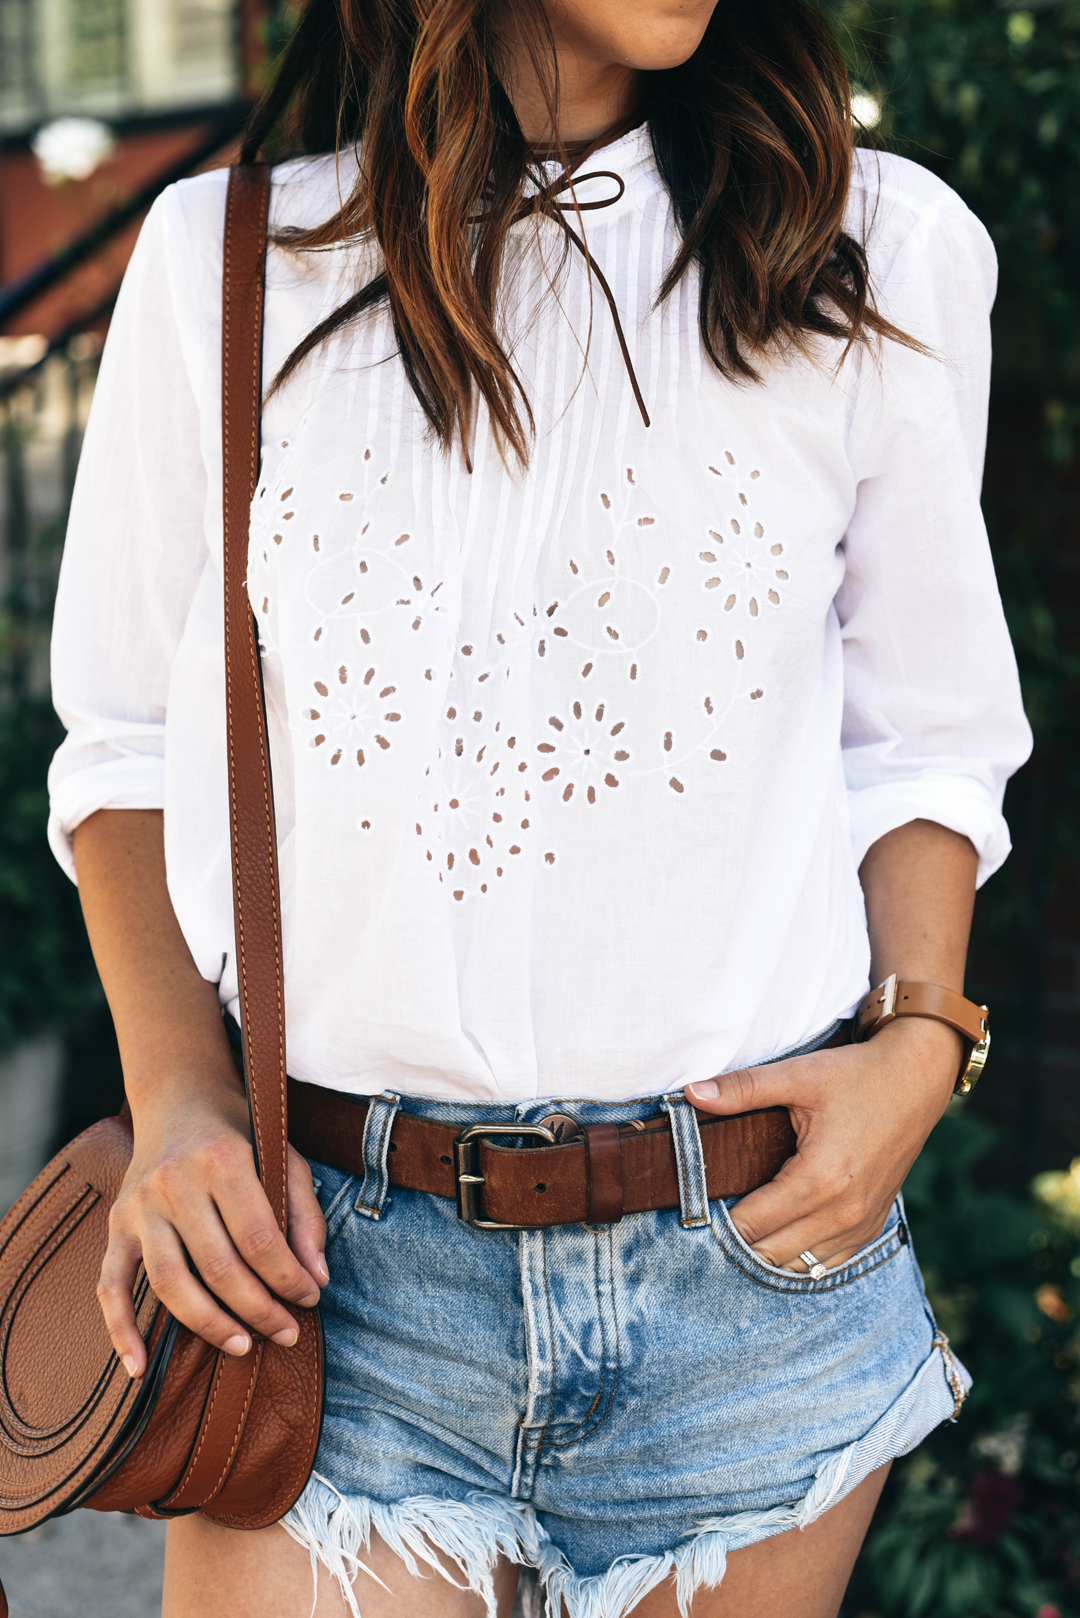 6 ways to wear white after labor day - something about that